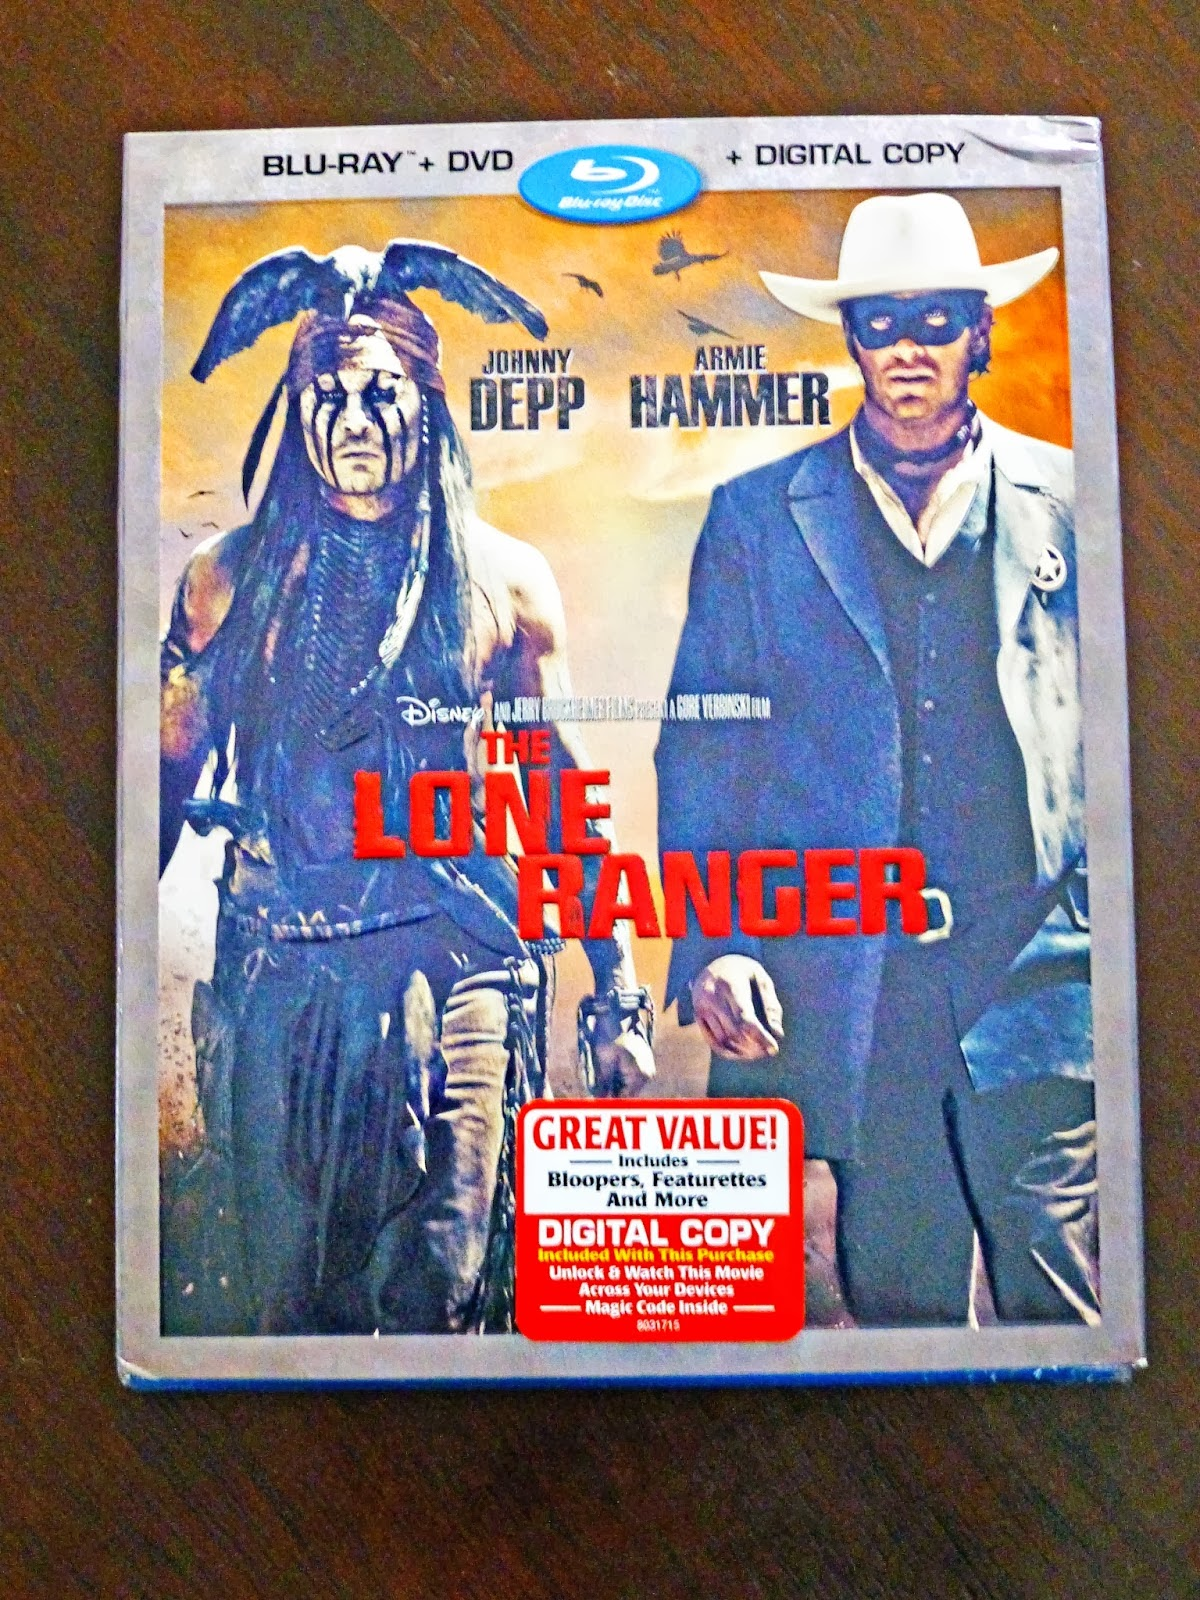 Enter To Win The Lone Ranger Blu-Ray